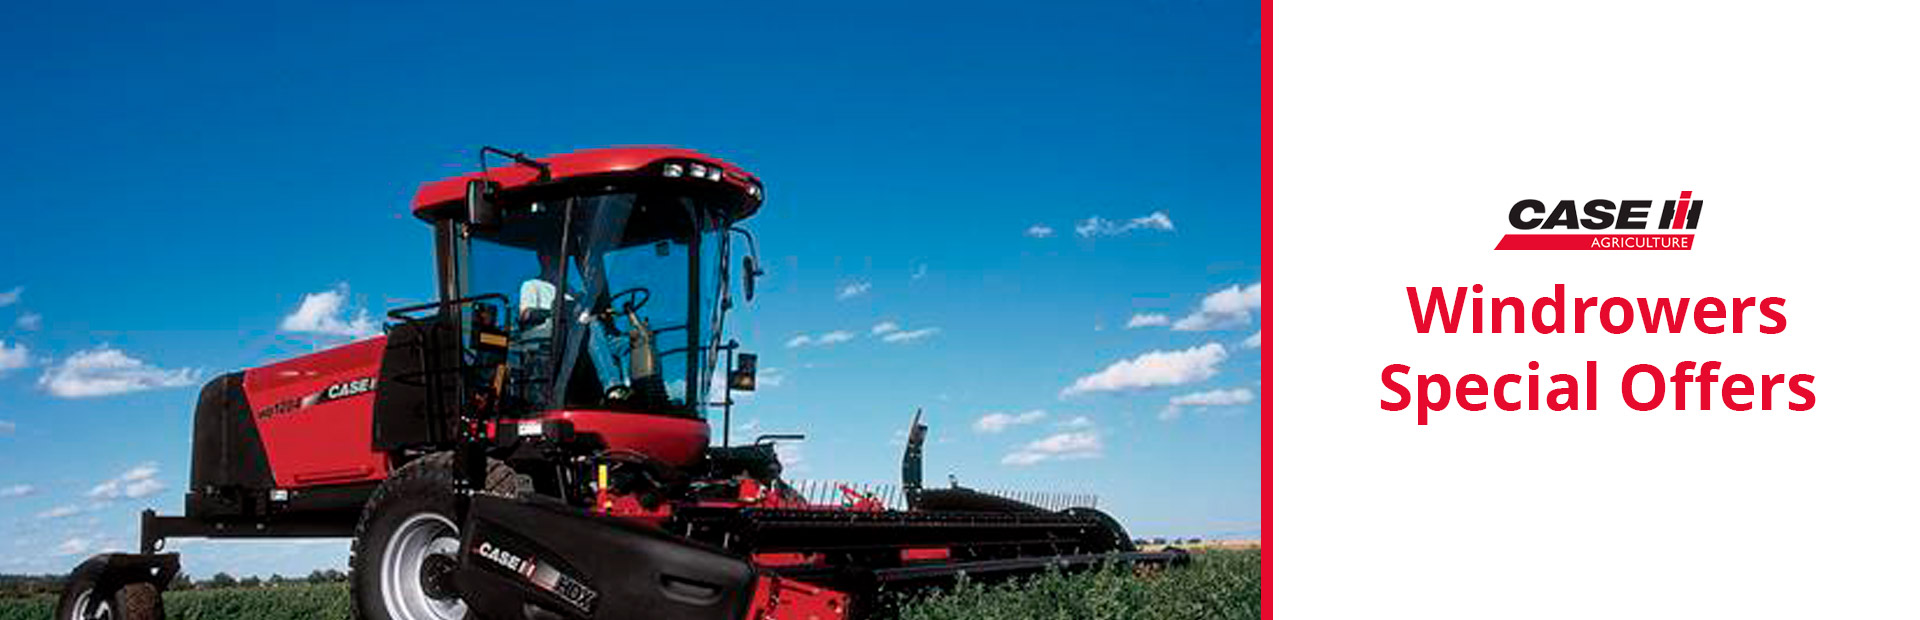 Case IH: Windrowers Special Offers